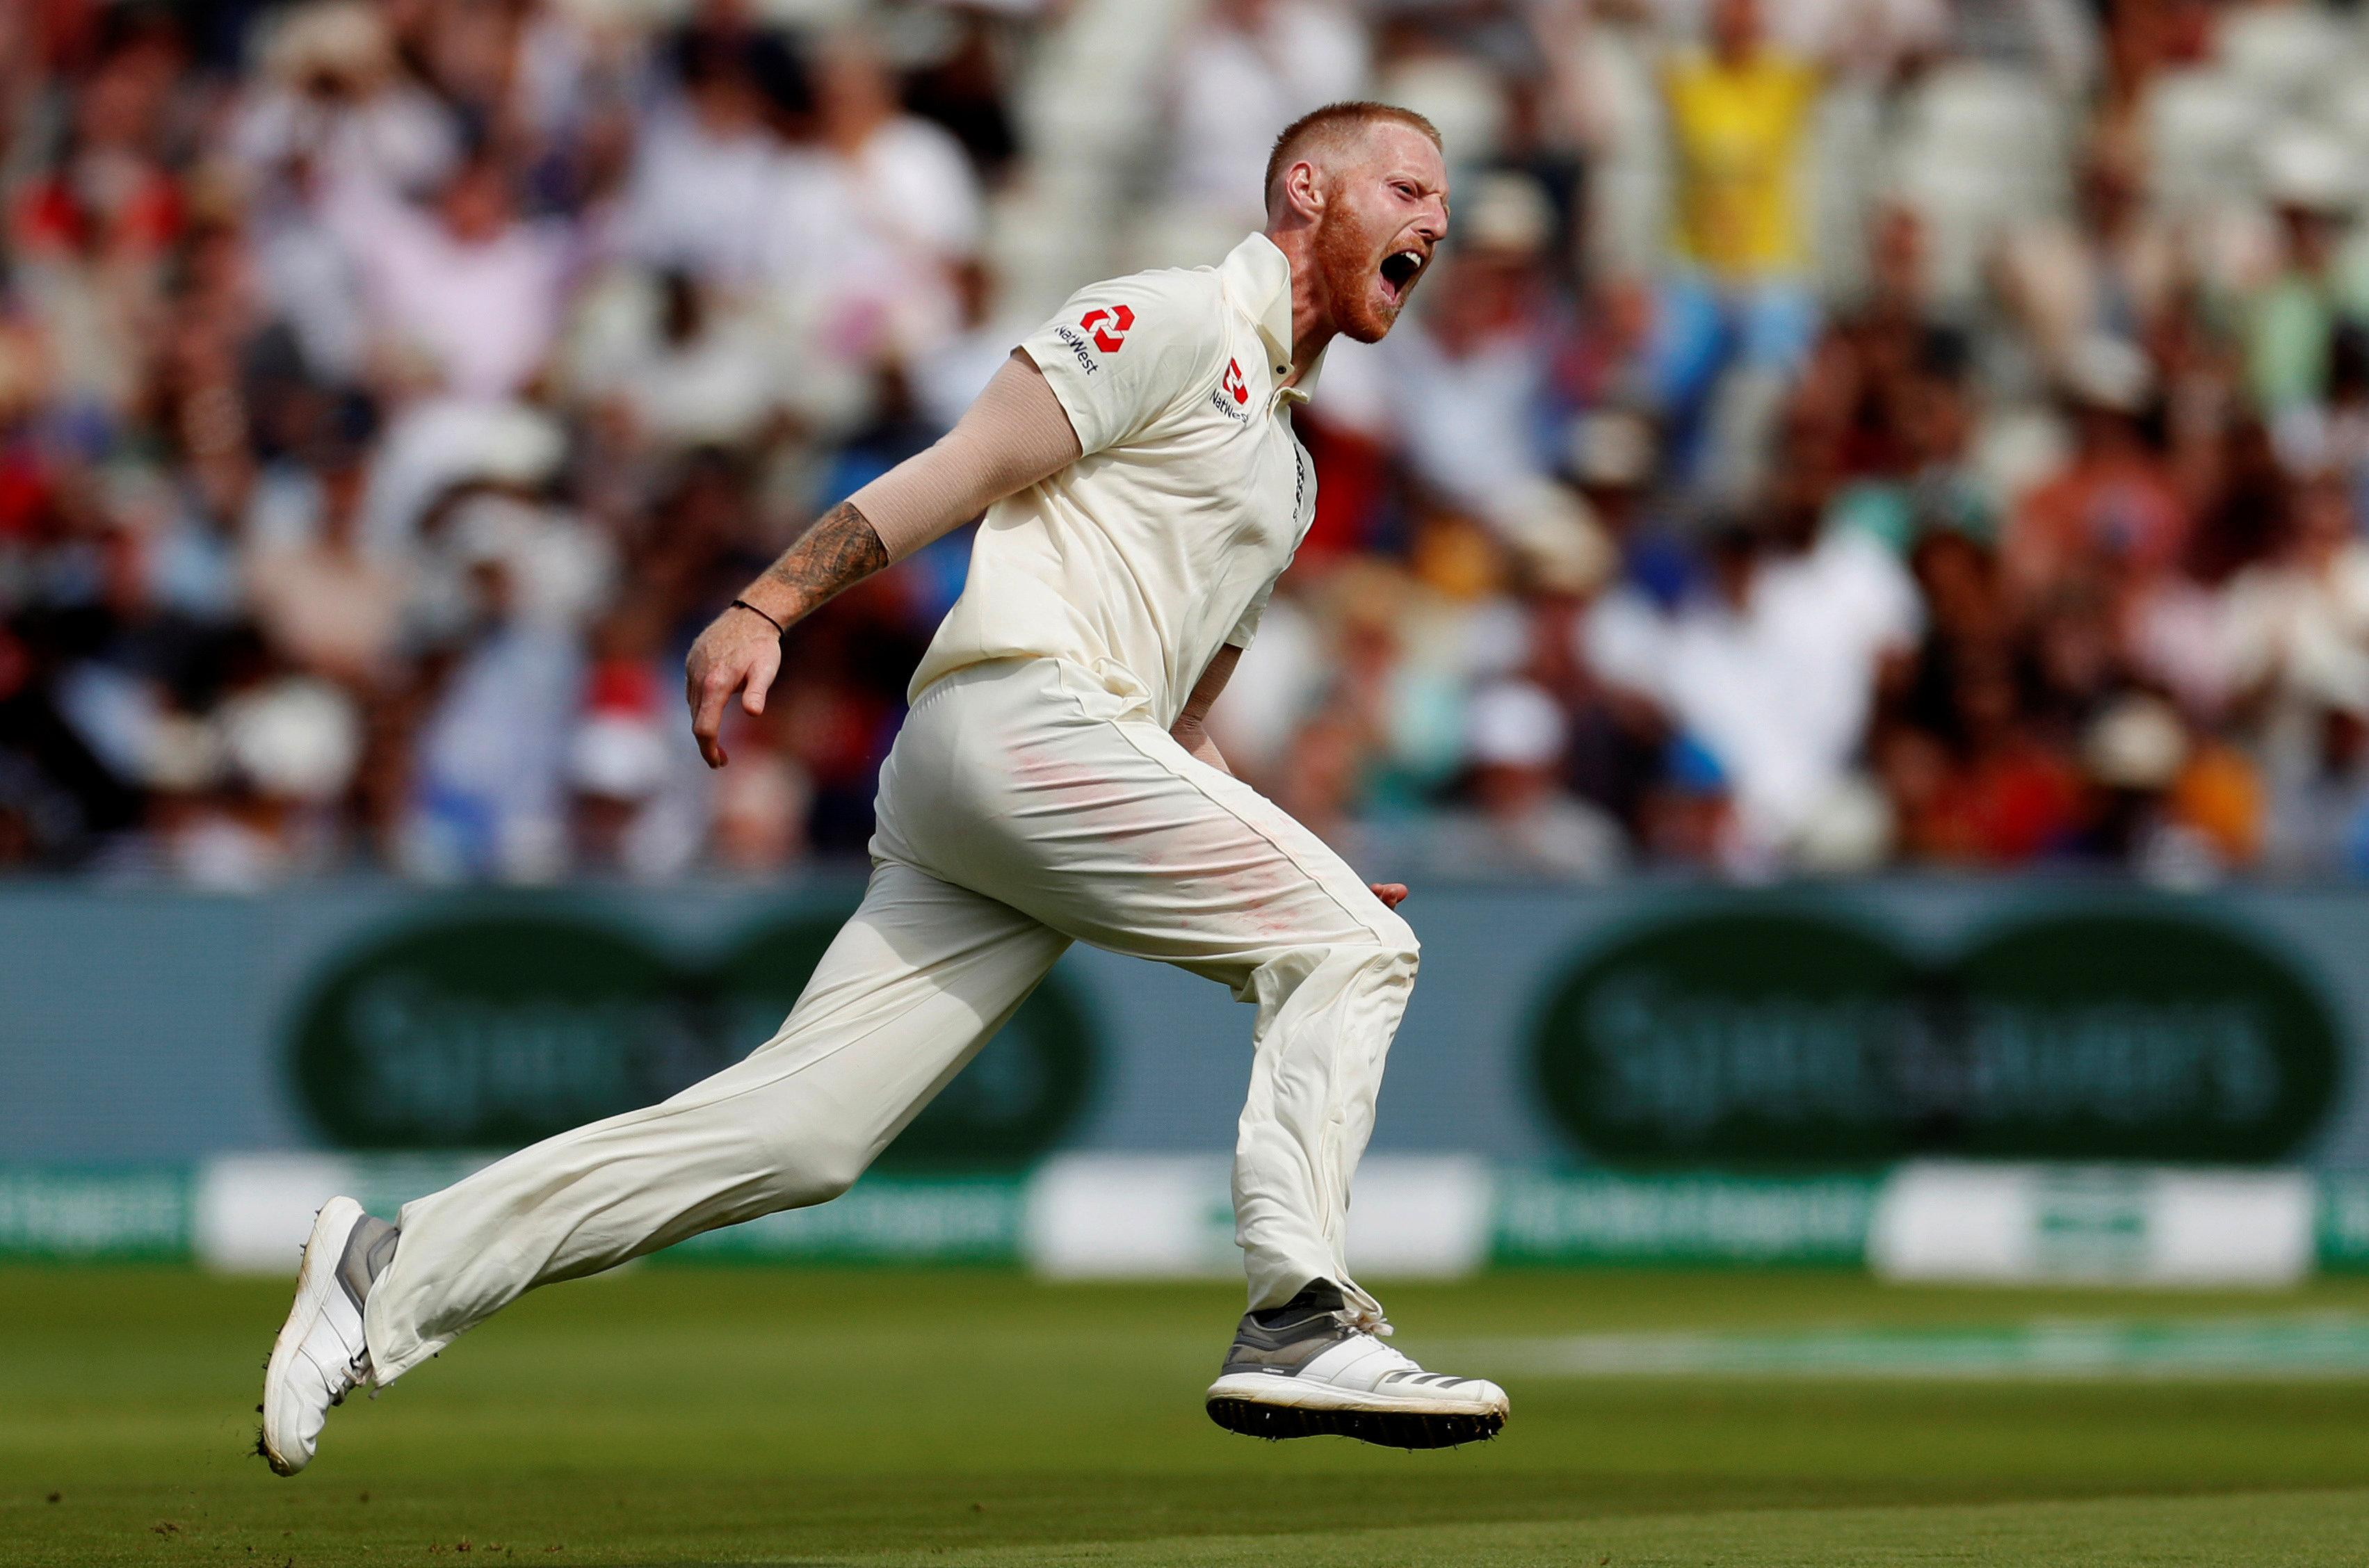 England fans are desperate to see Ben Stokes go back to doing what he does best